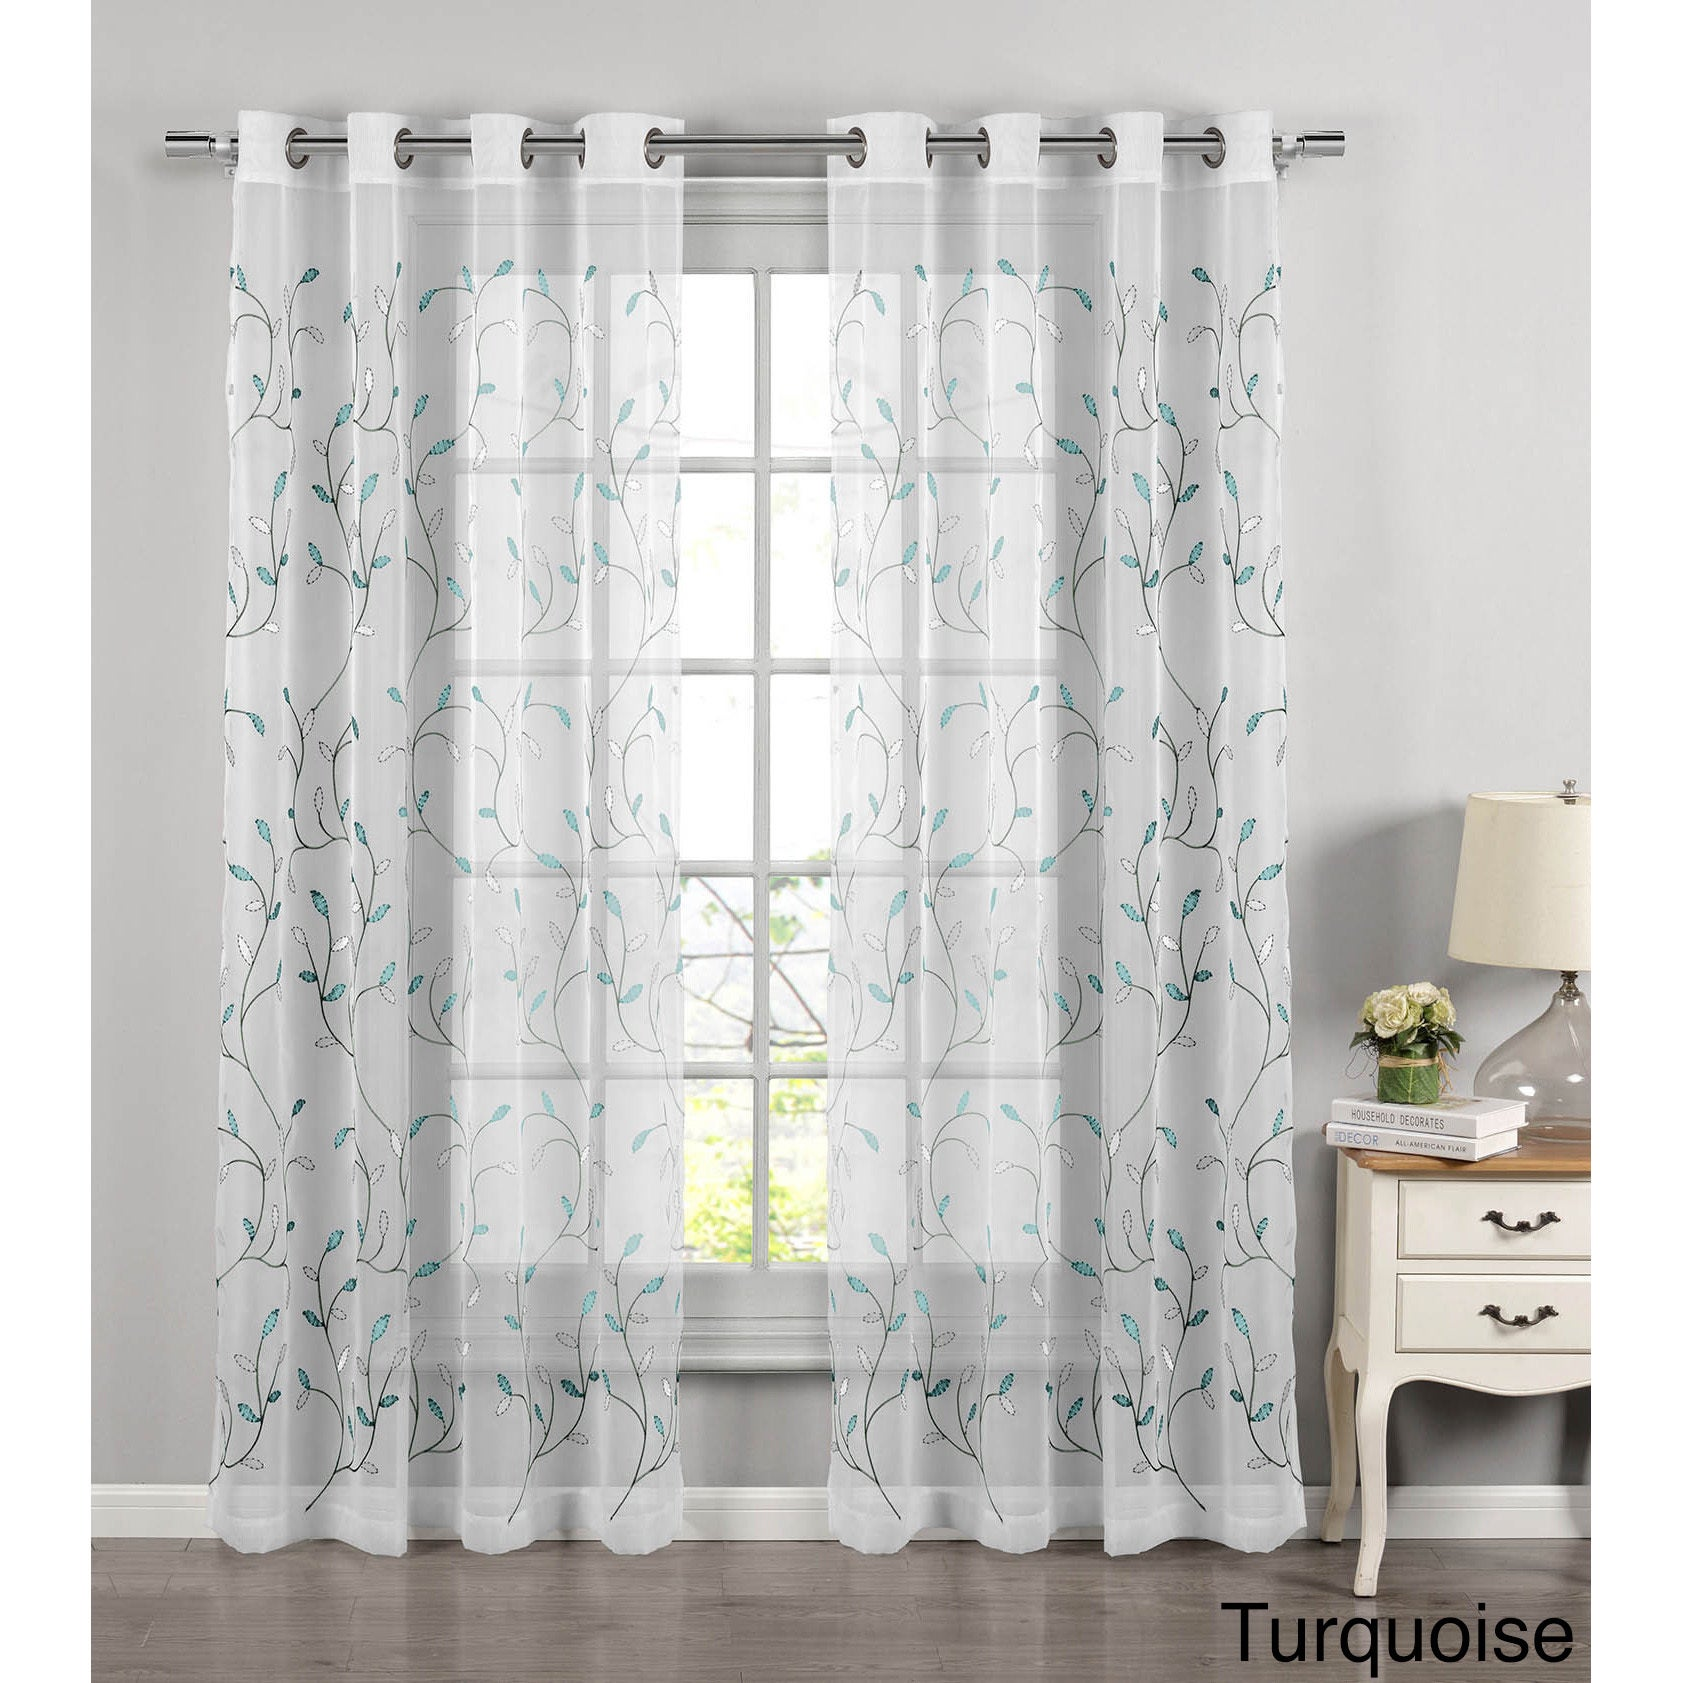 Window Elements Wavy Leaves 54 Inch X 84 Inch Embroidered Sheer Extra Wide